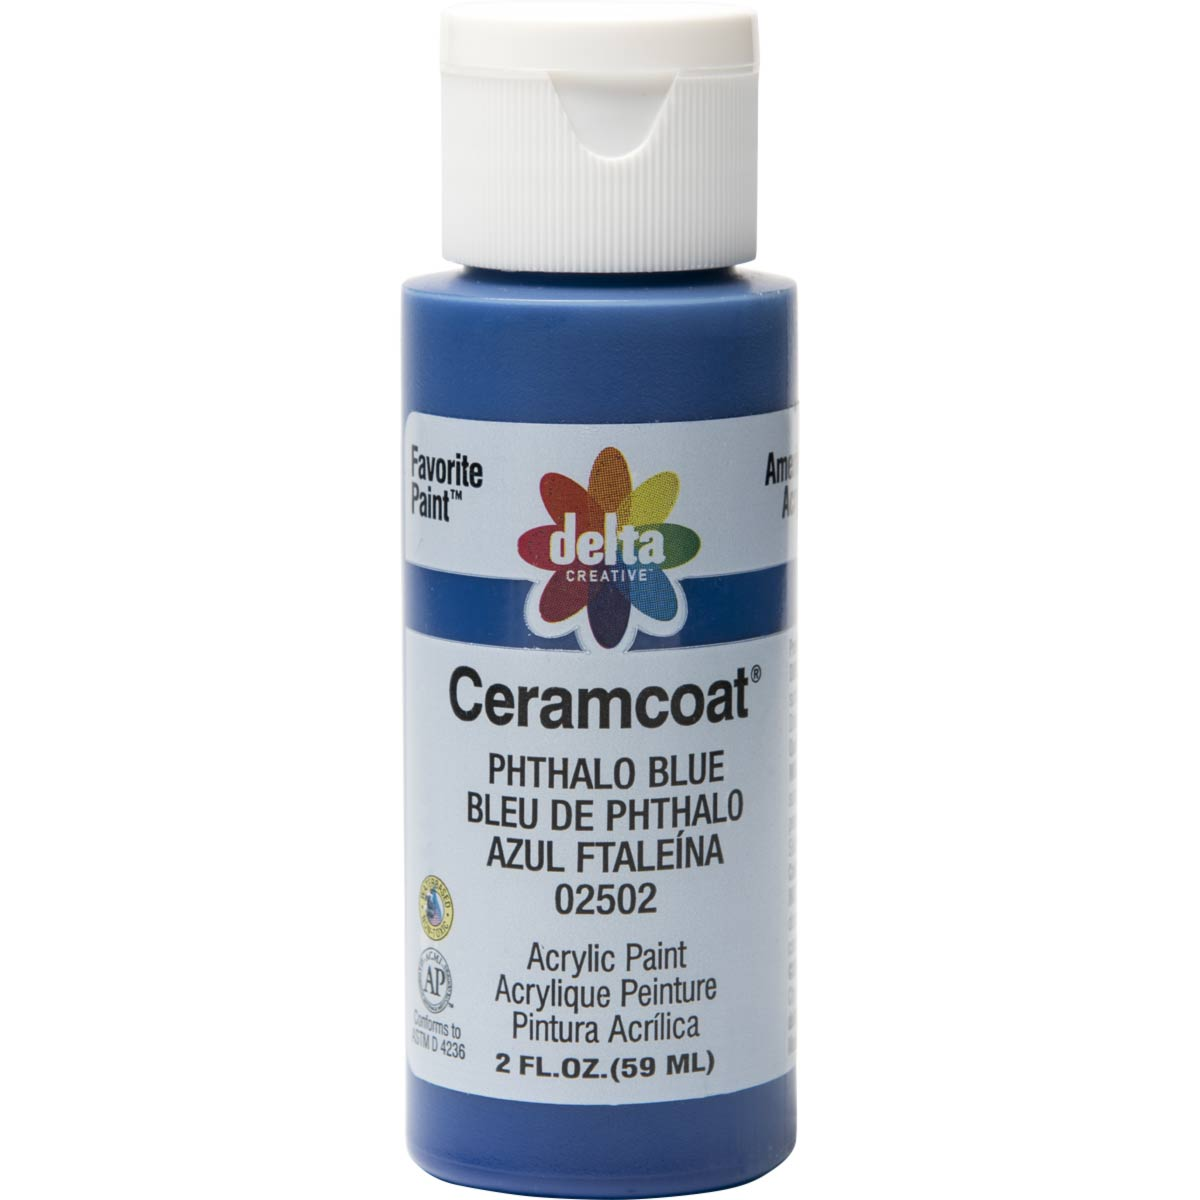 Delta Ceramcoat ® Acrylic Paint - Phthalo Blue, 2 oz.